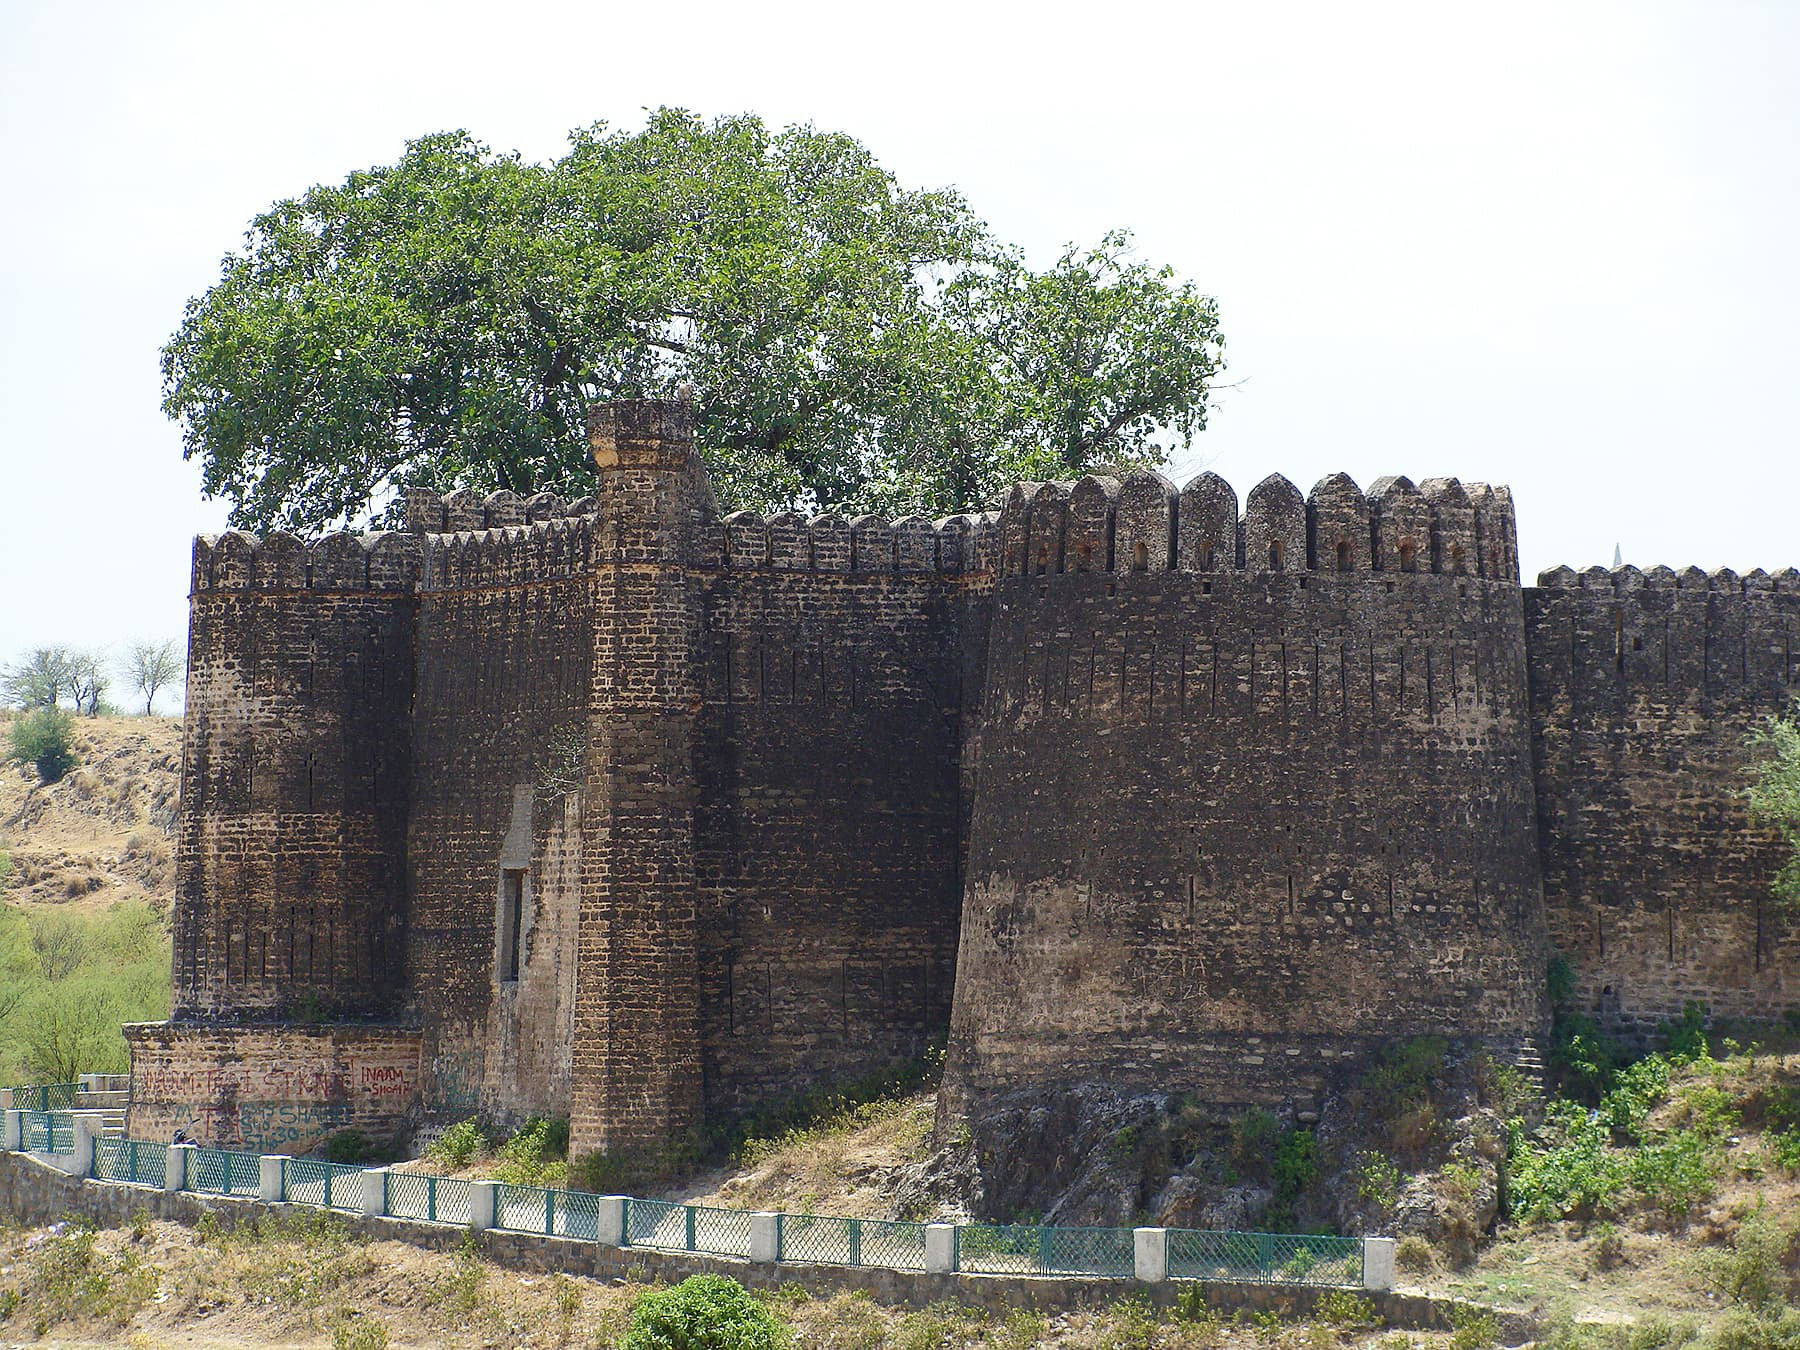 A closer view of bastions of the fort.